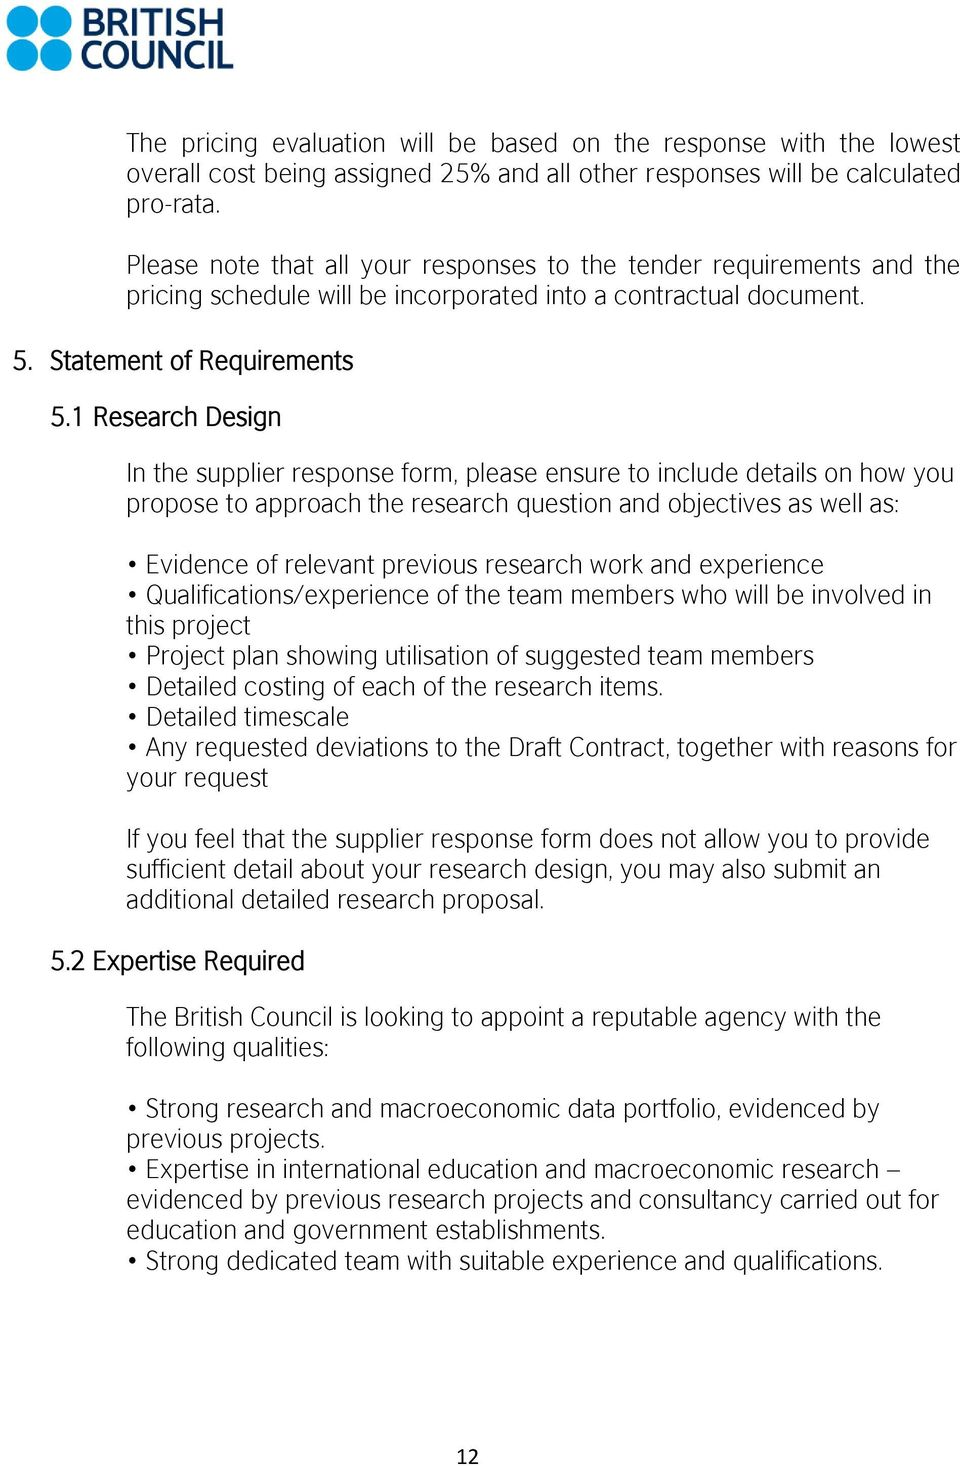 1 Research Design In the supplier response form, please ensure to include details on how you propose to approach the research question and objectives as well as: Evidence of relevant previous